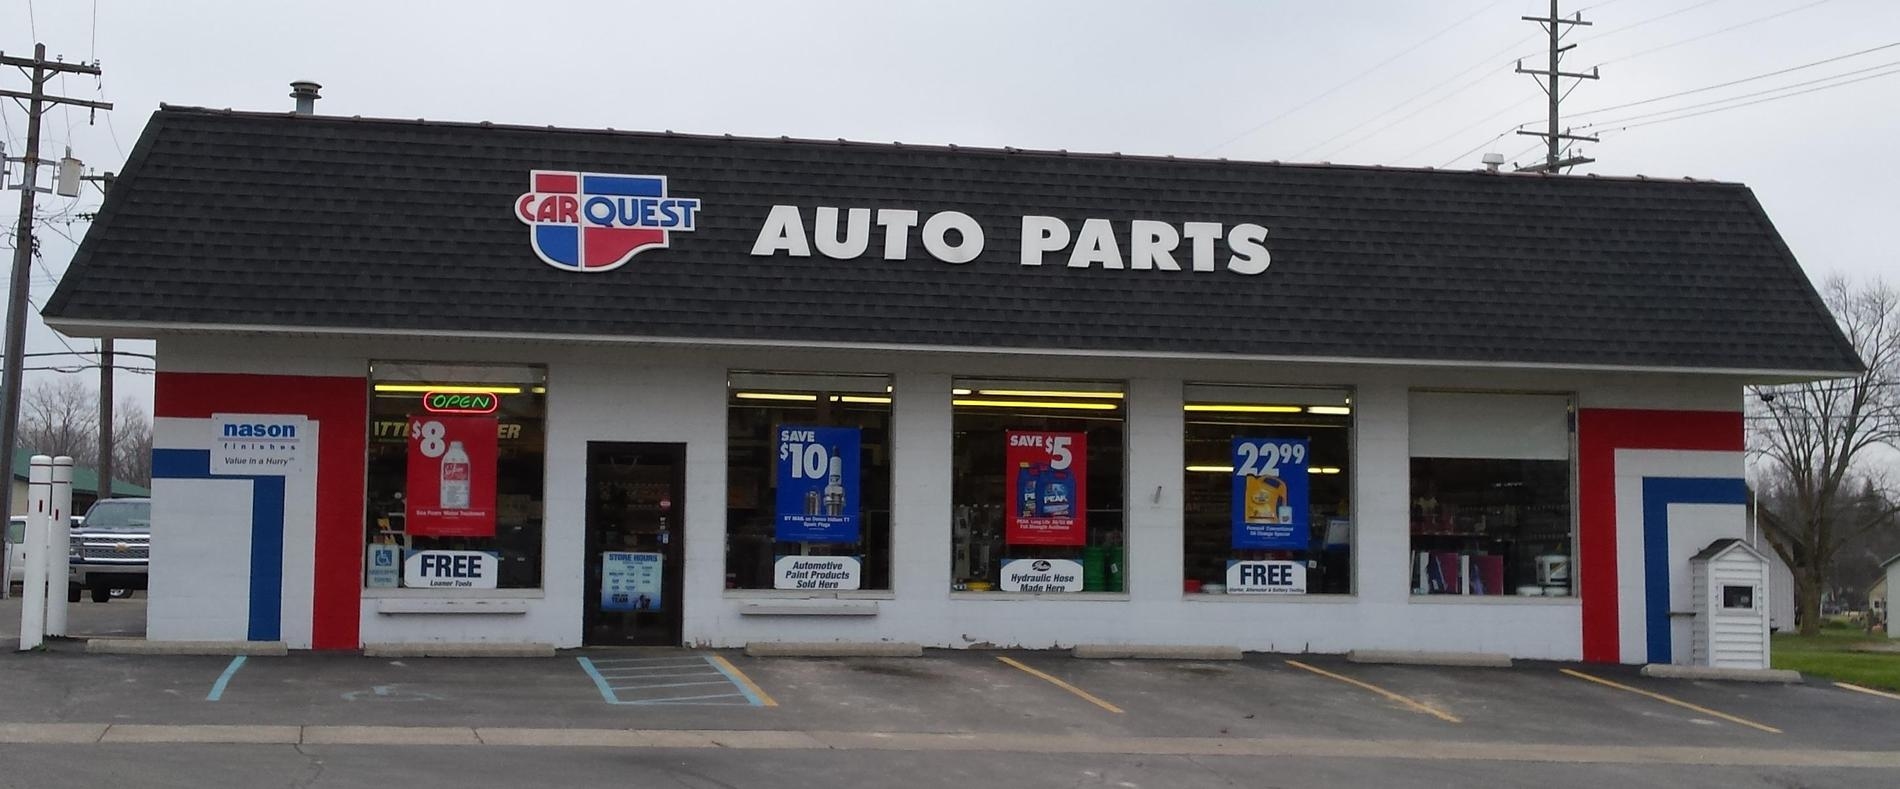 Carquest Auto Parts Near Me >> Saline Mi Carquest Auto Parts 406 North Ann Arbor Street